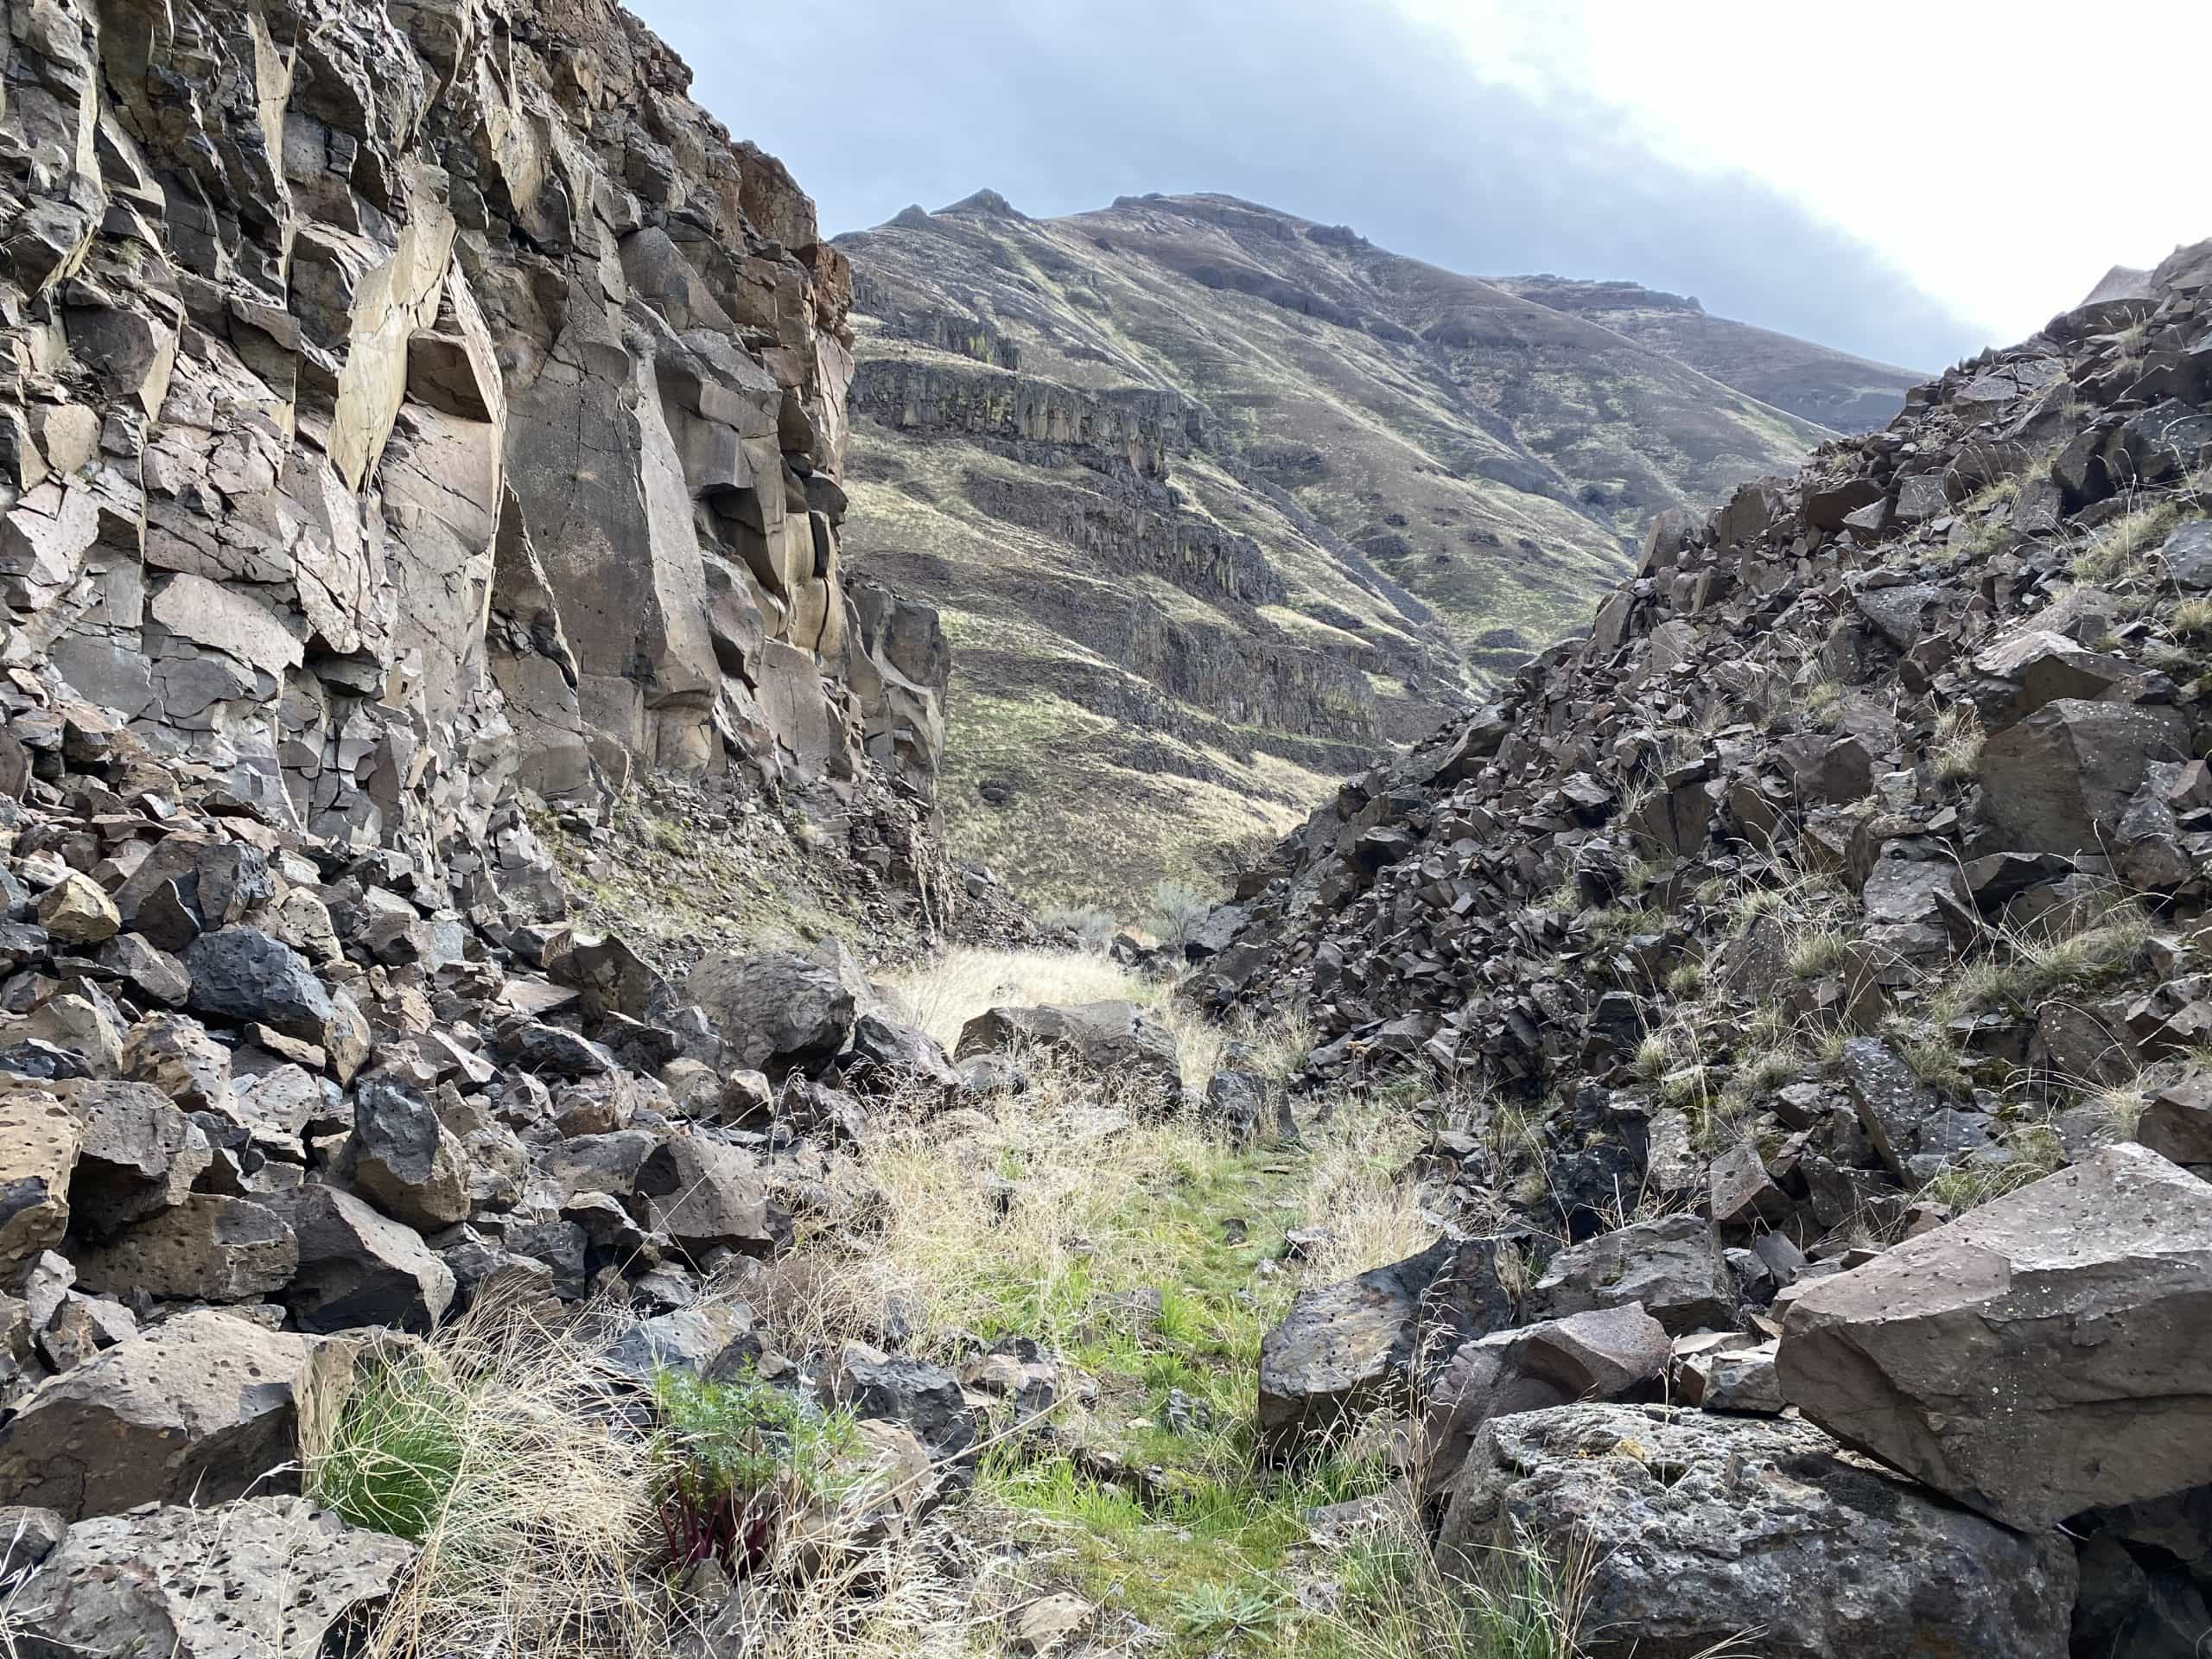 The very rugged single track section of the Old Railway Trail along the Deschutes River near Macks Canyon.